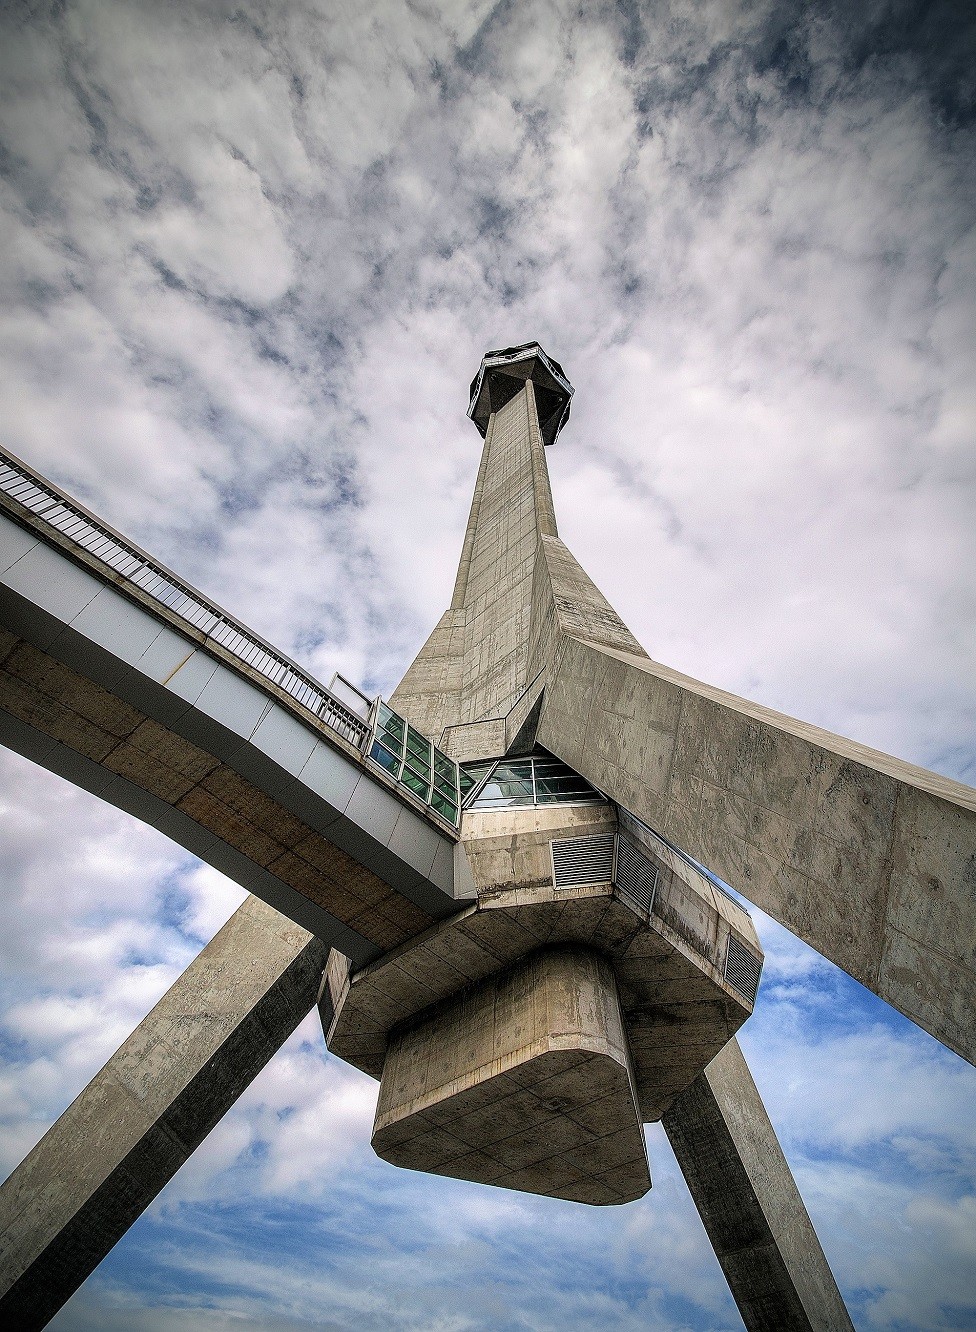 A concrete tower building in the shape of a tripod